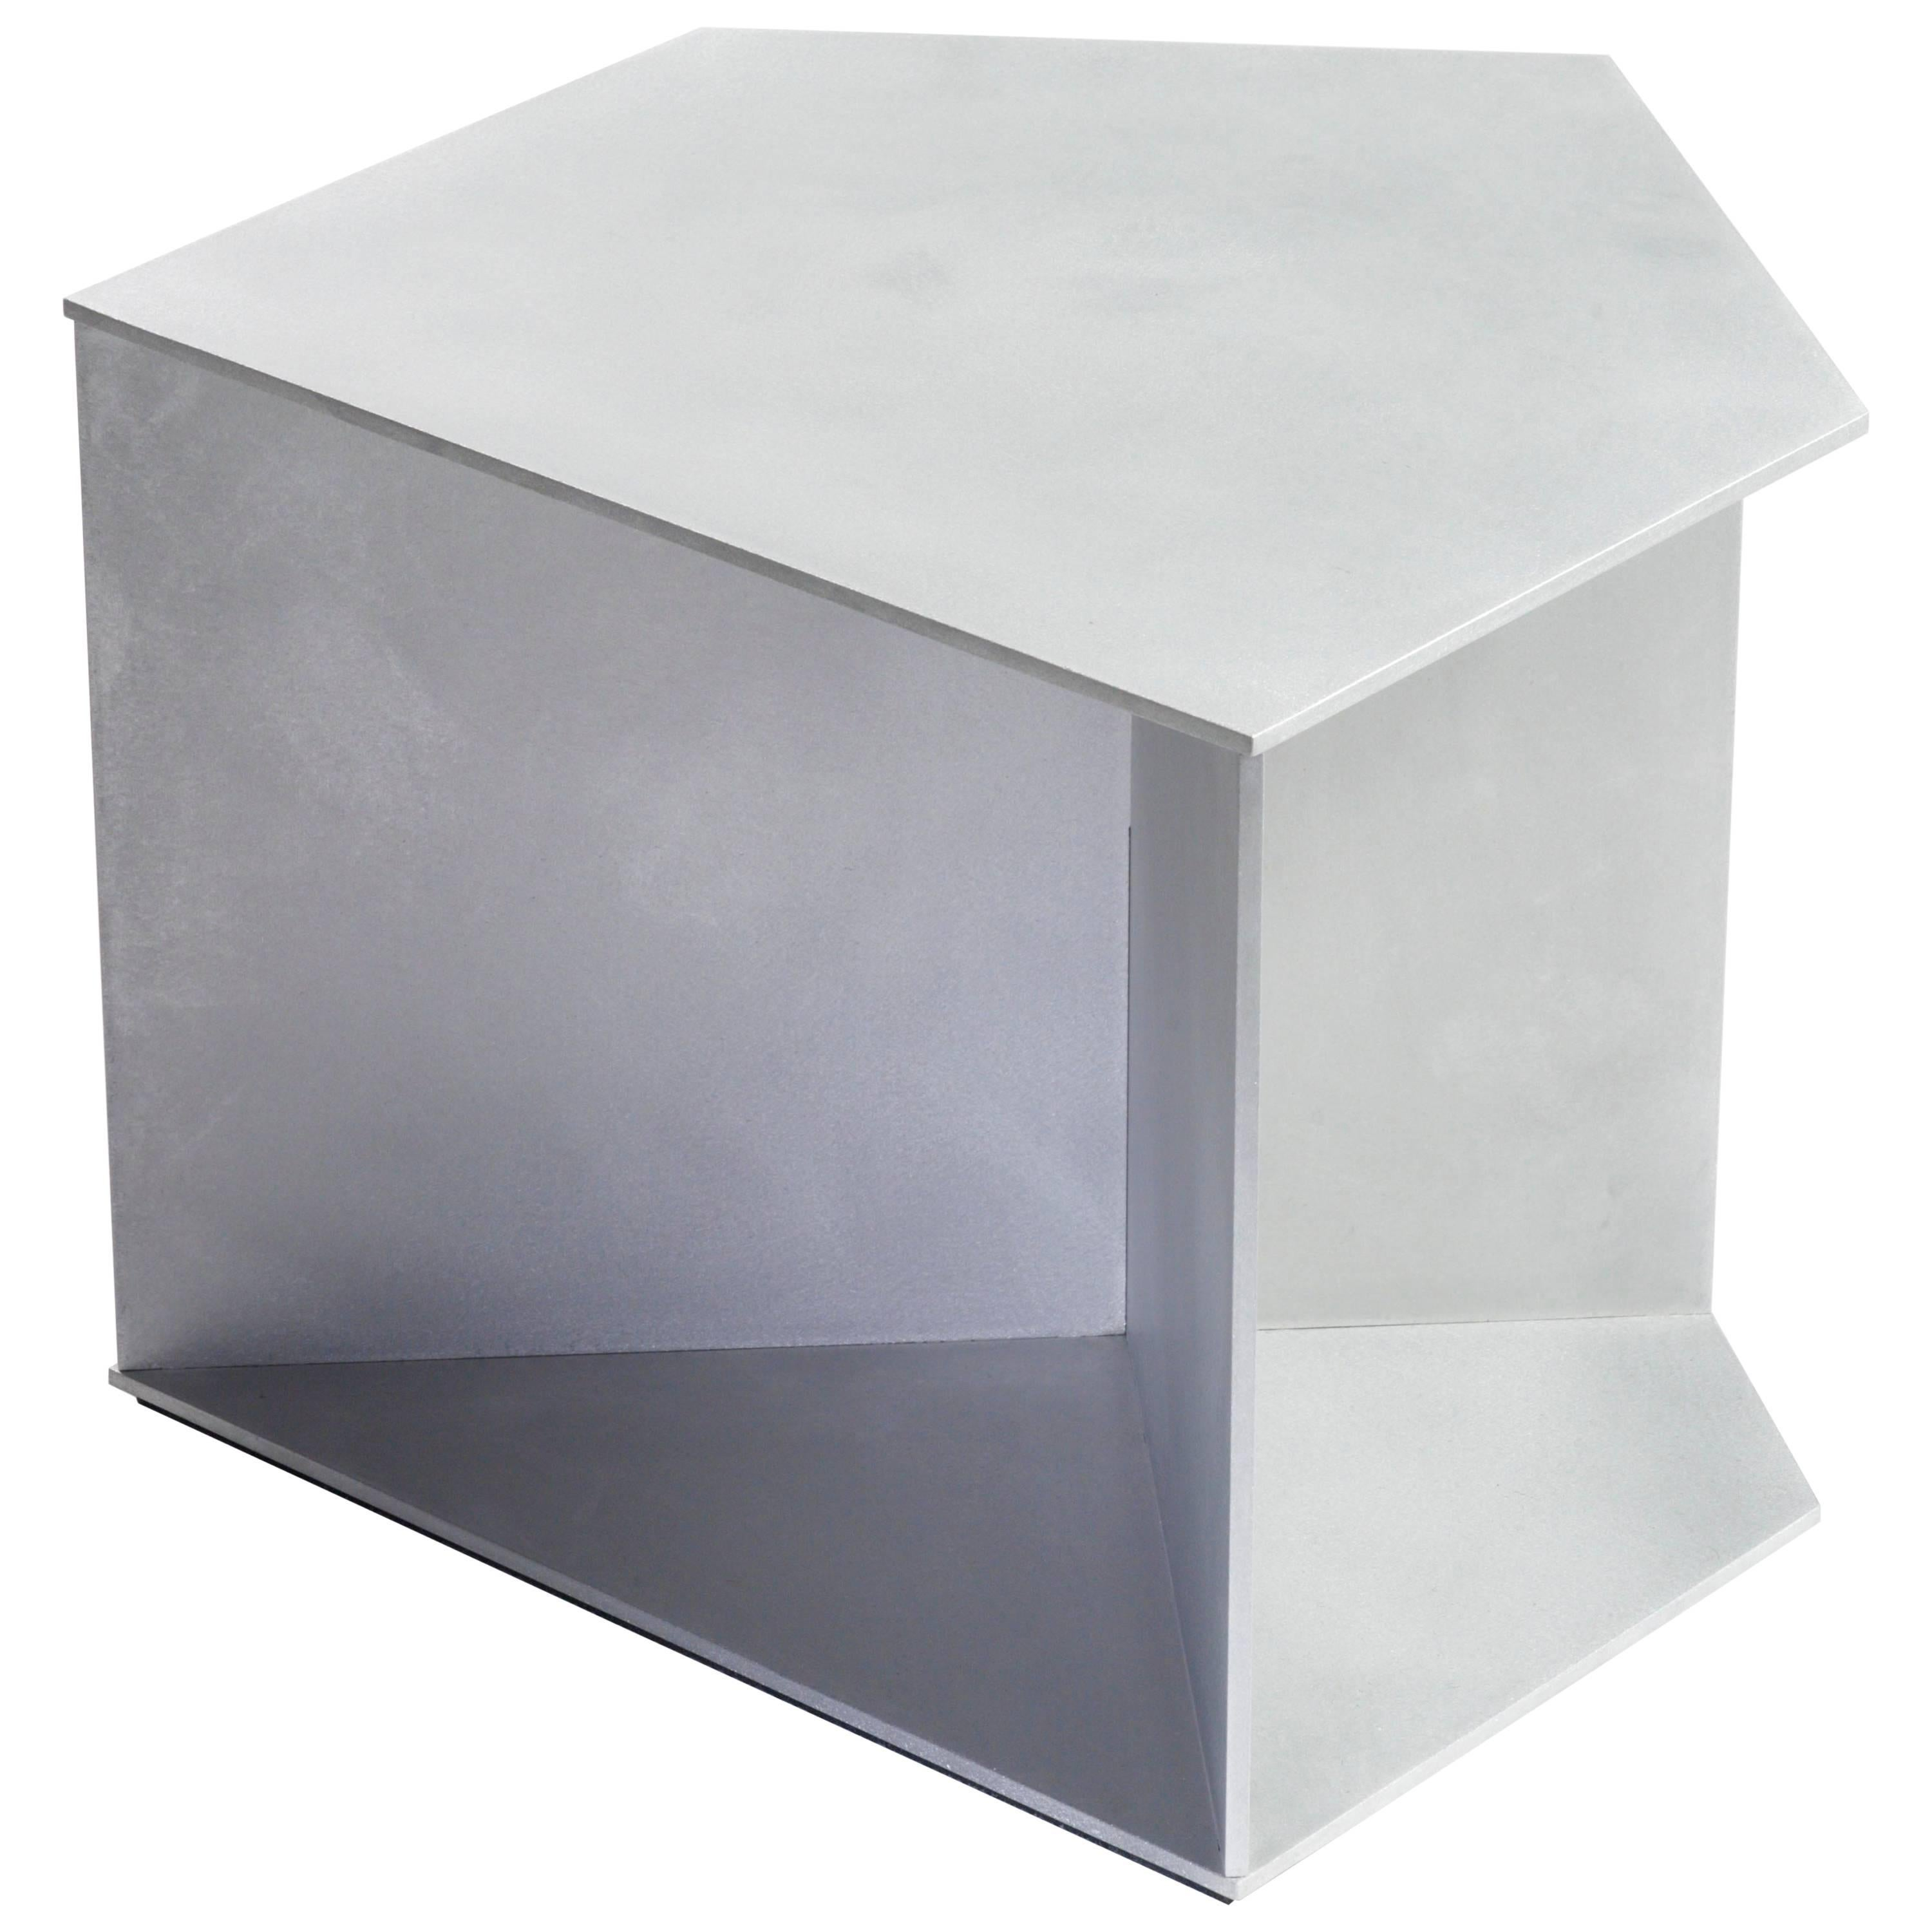 Home Plate Table in Waxed and Polished Aluminium Plate by Jonathan Nesci